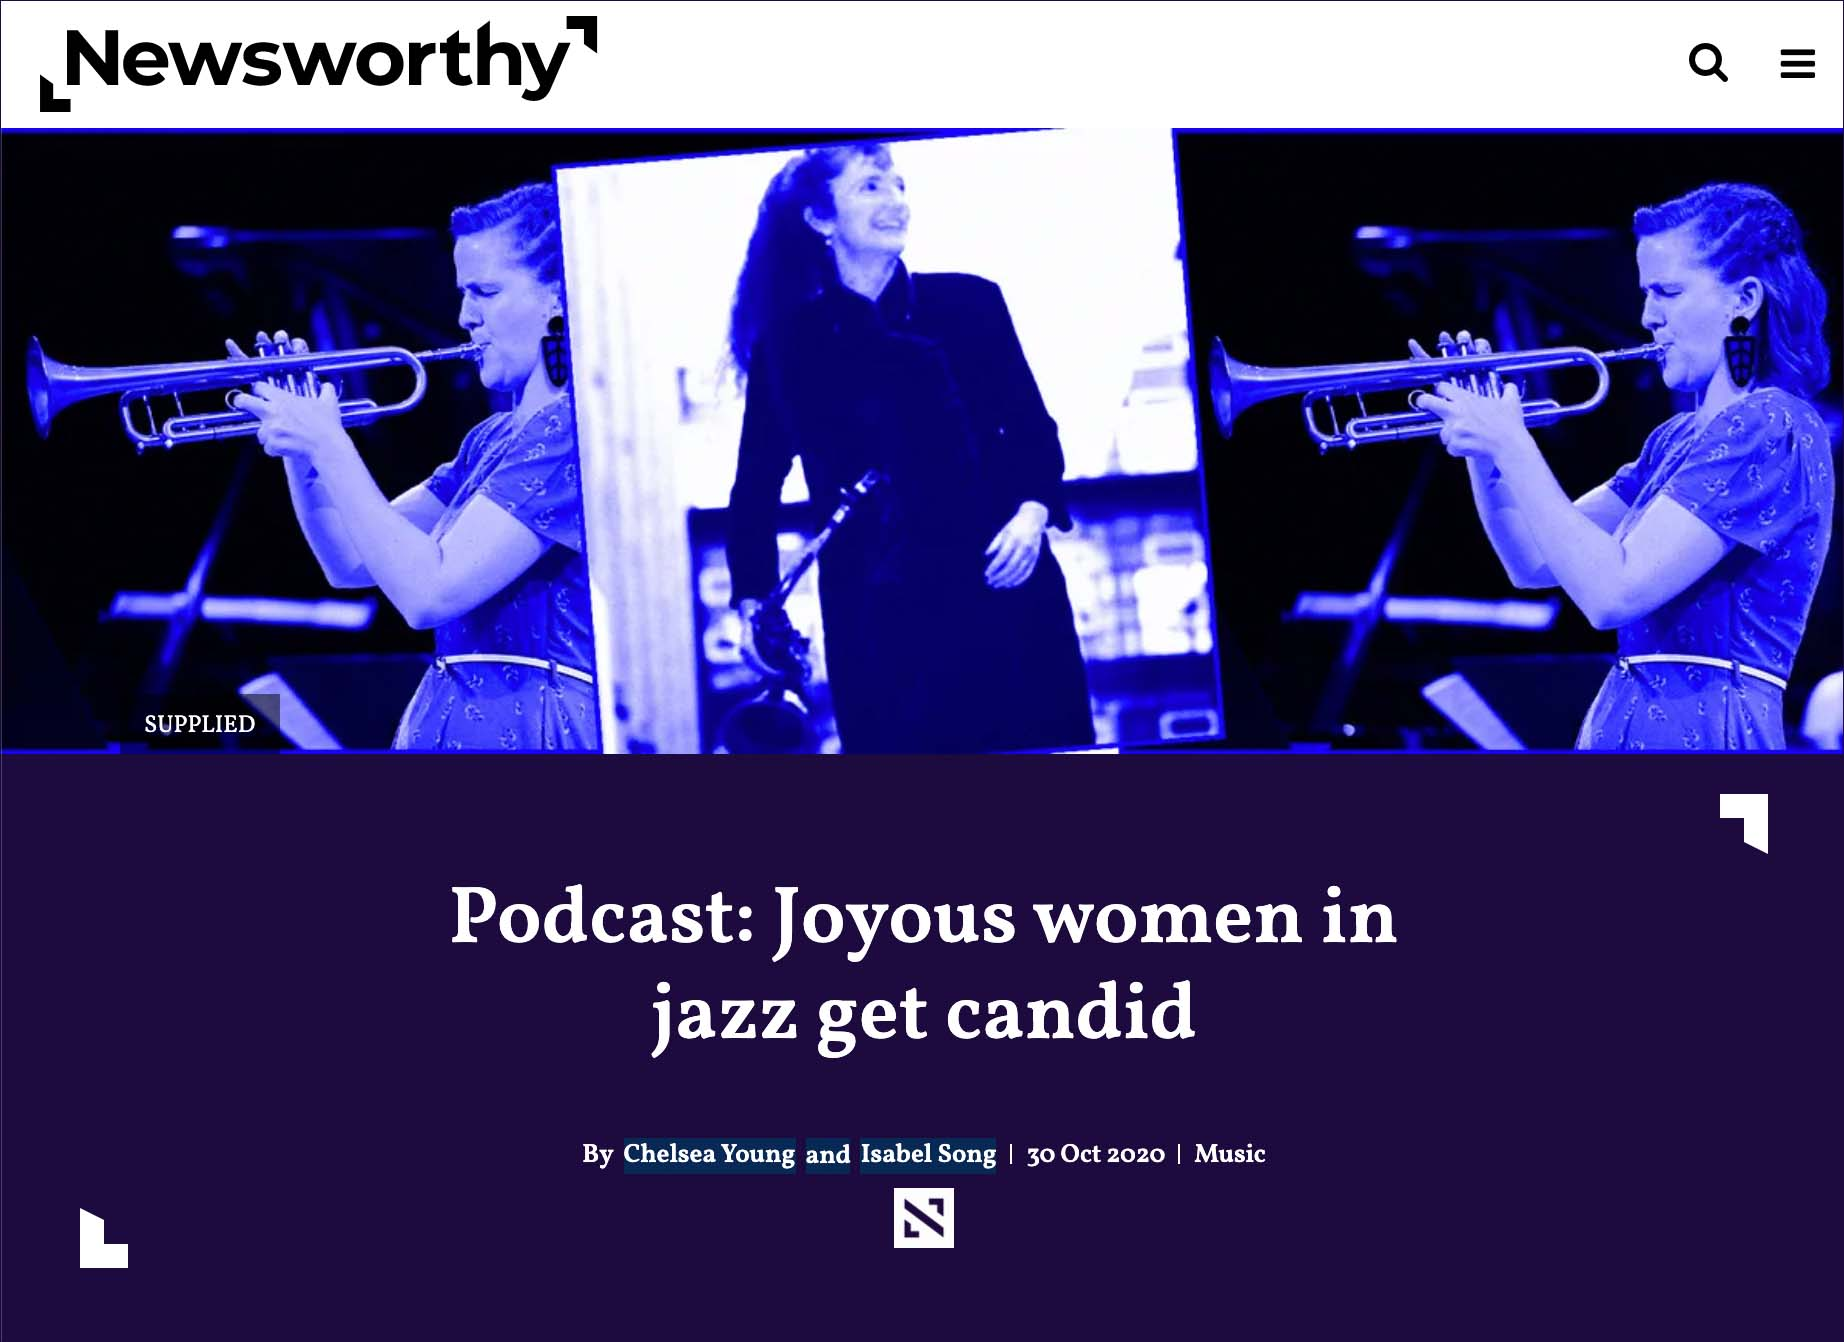 Podcast: Joyous women in jazz get candid